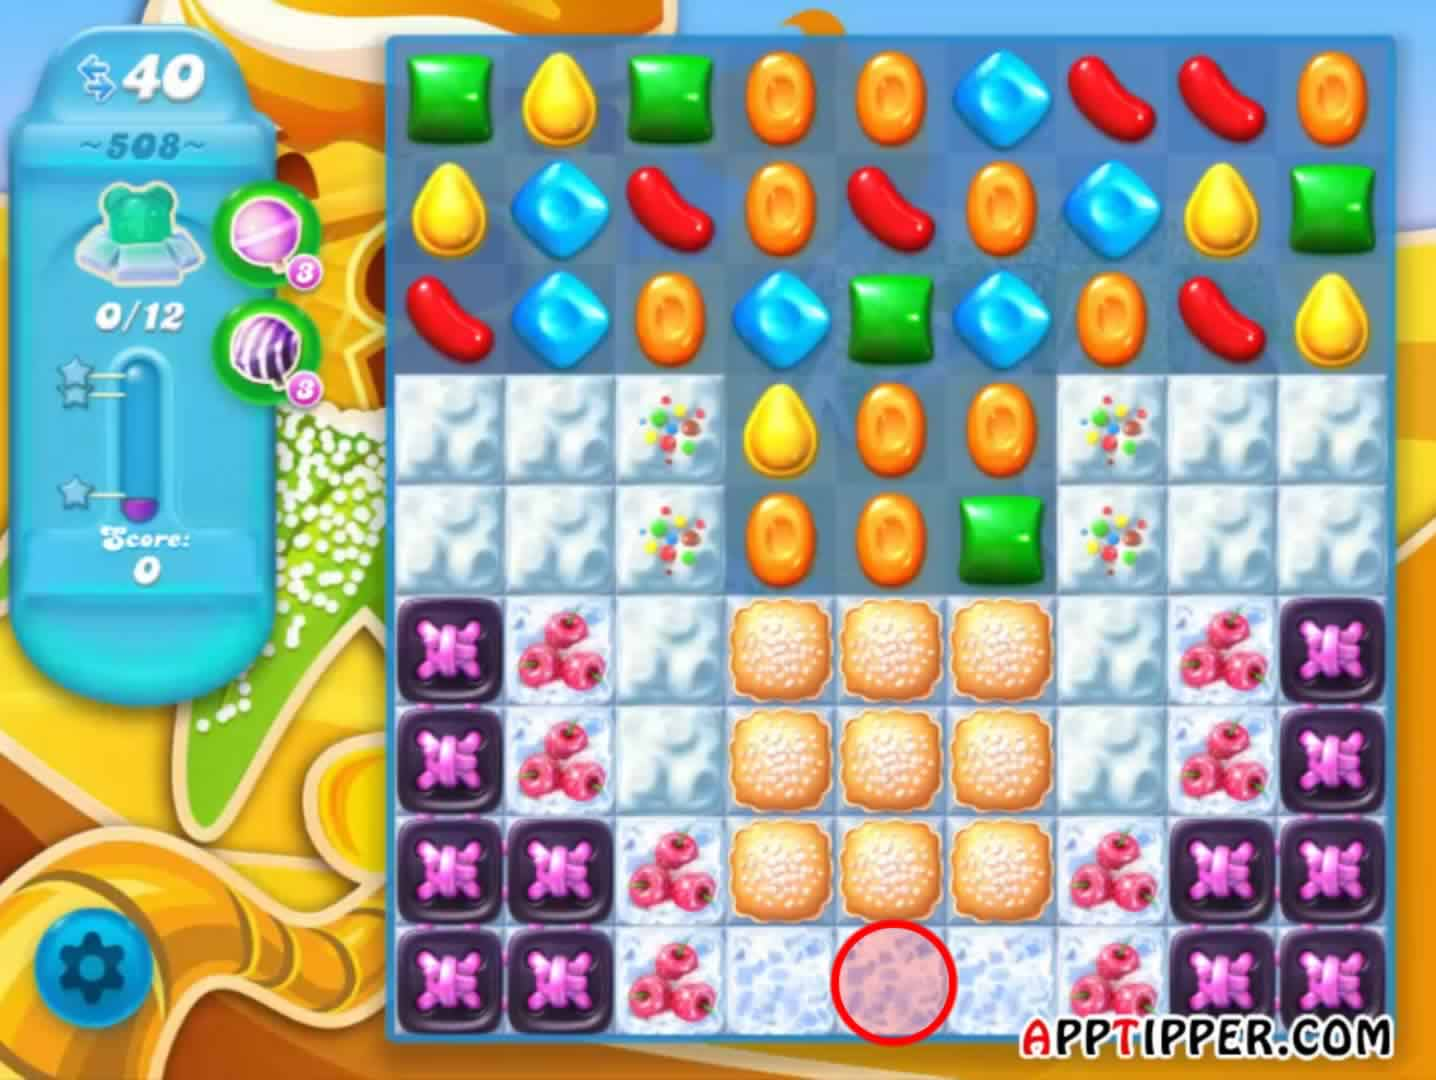 Candy Crush Soda Level 508 Image